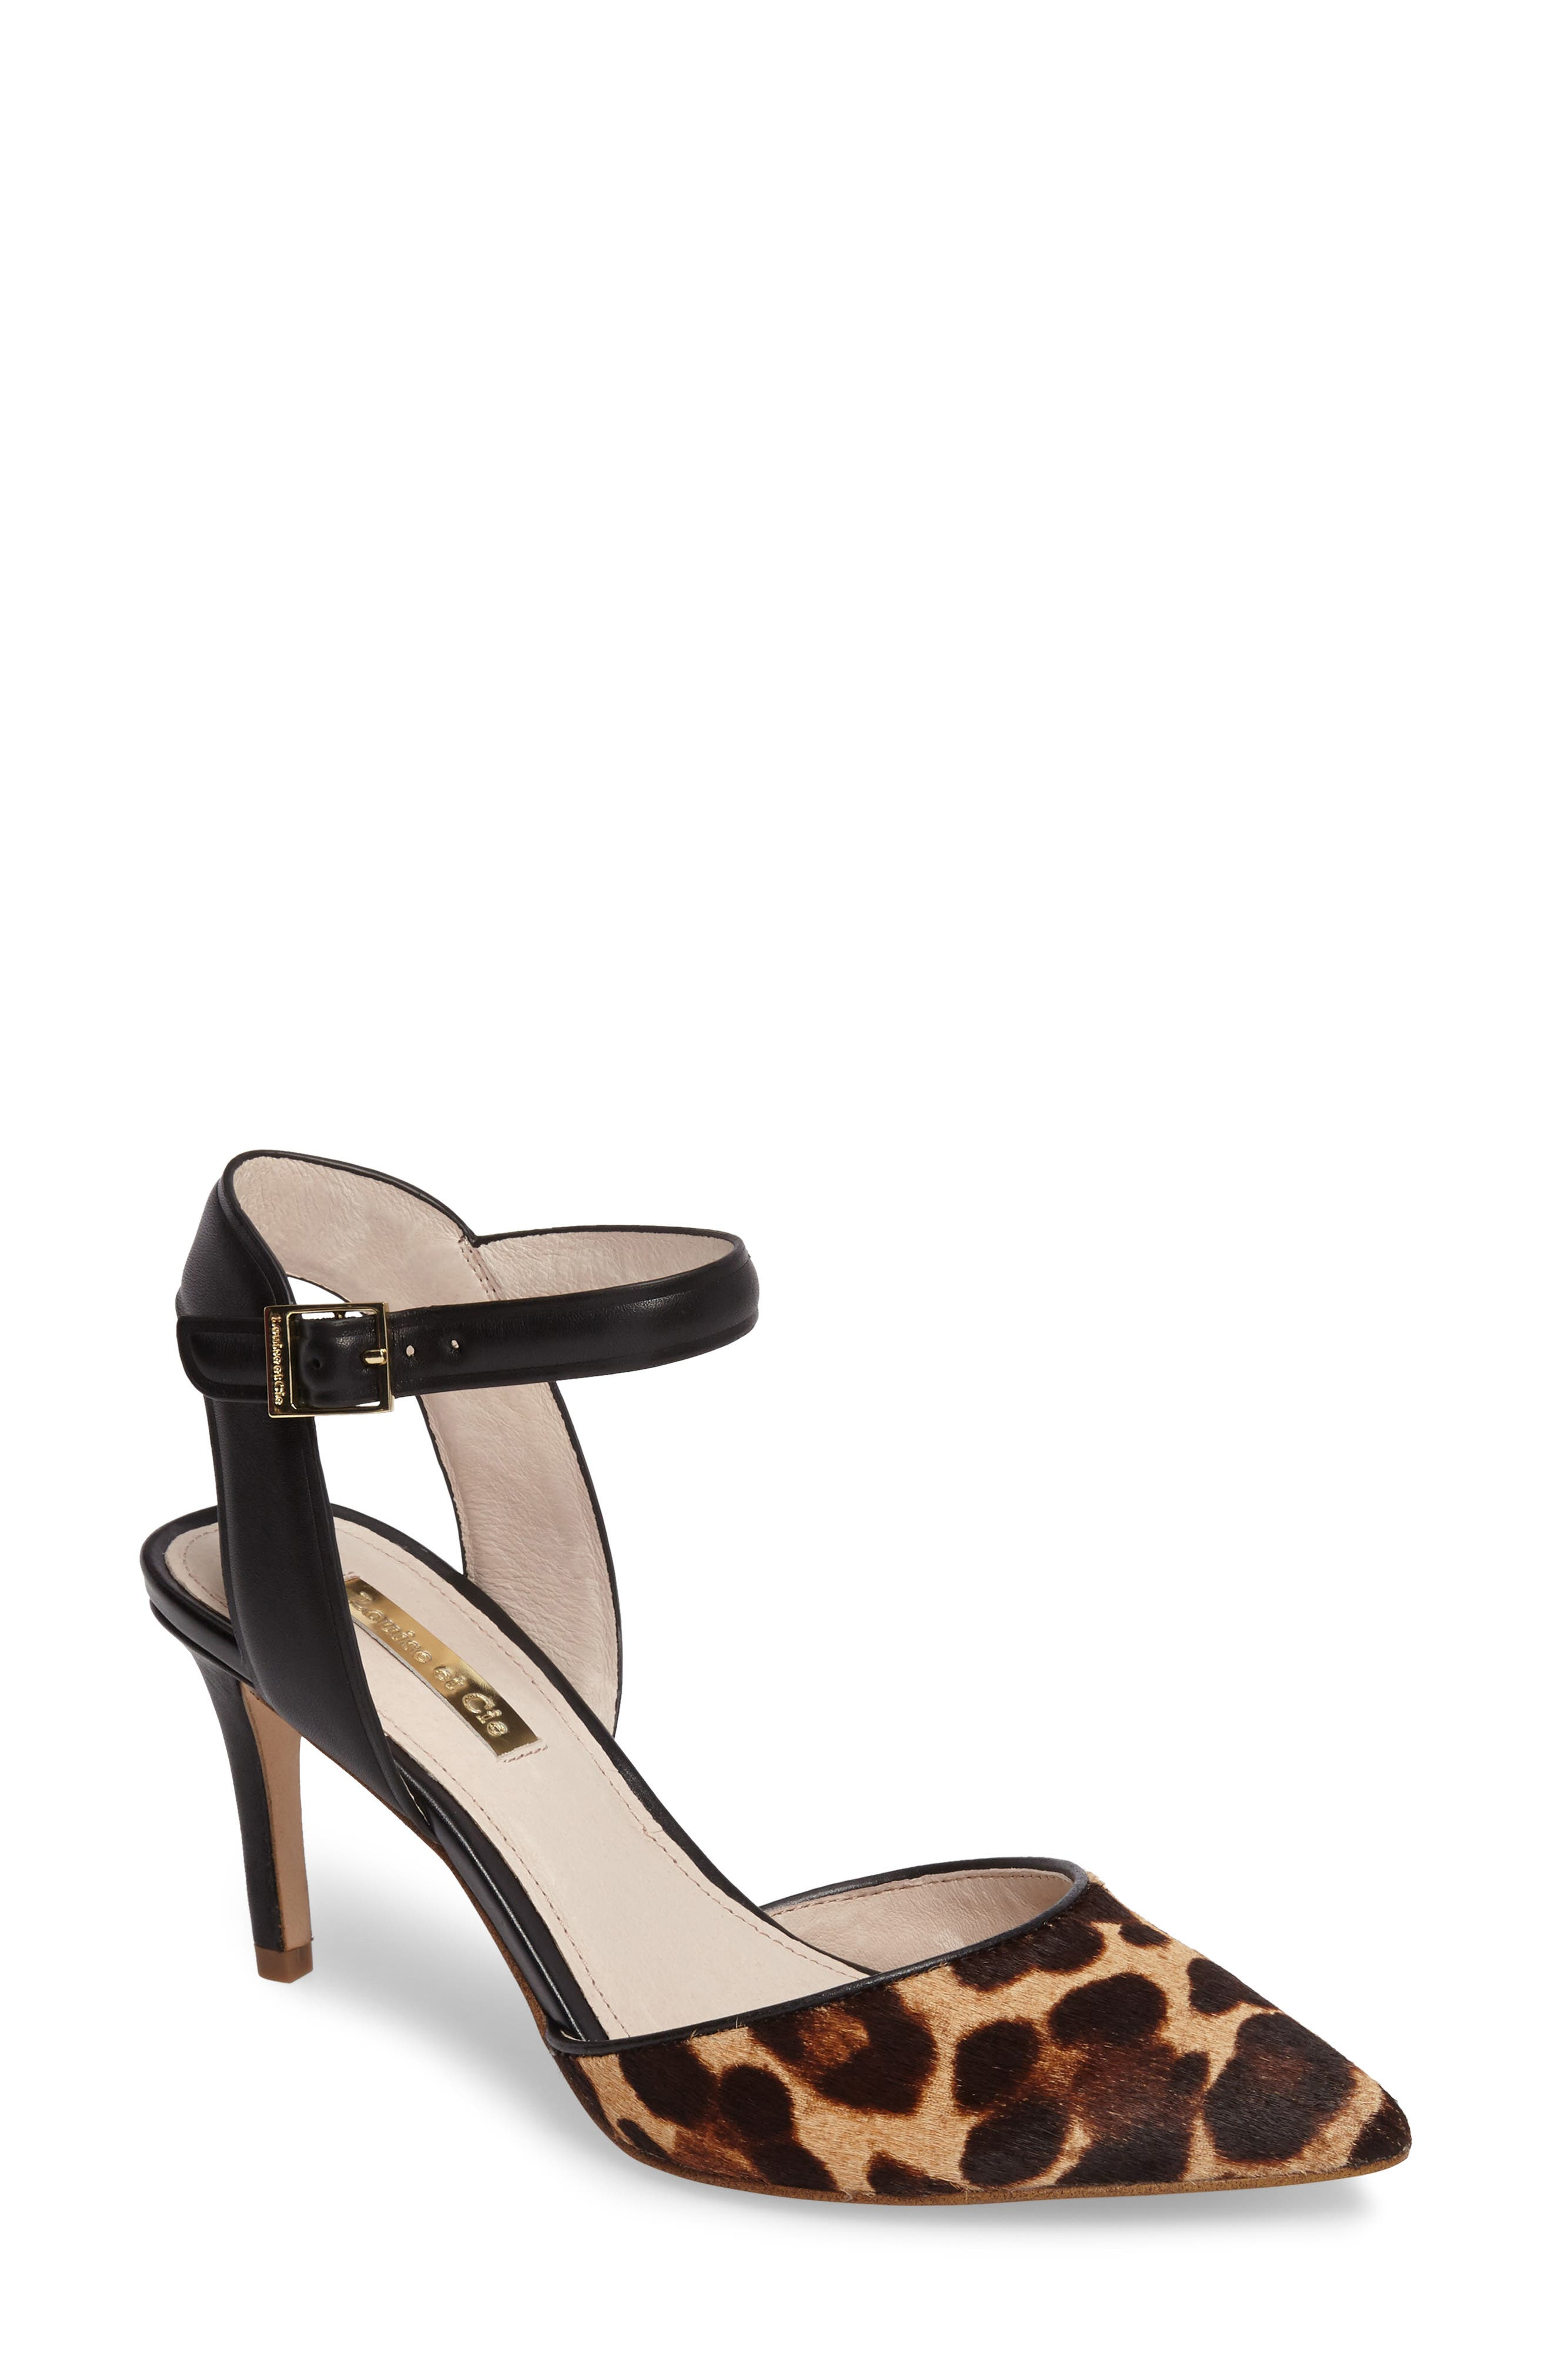 Kota Ankle Strap Pump,                             Main thumbnail 1, color,                             Leopard Print Calf Hair